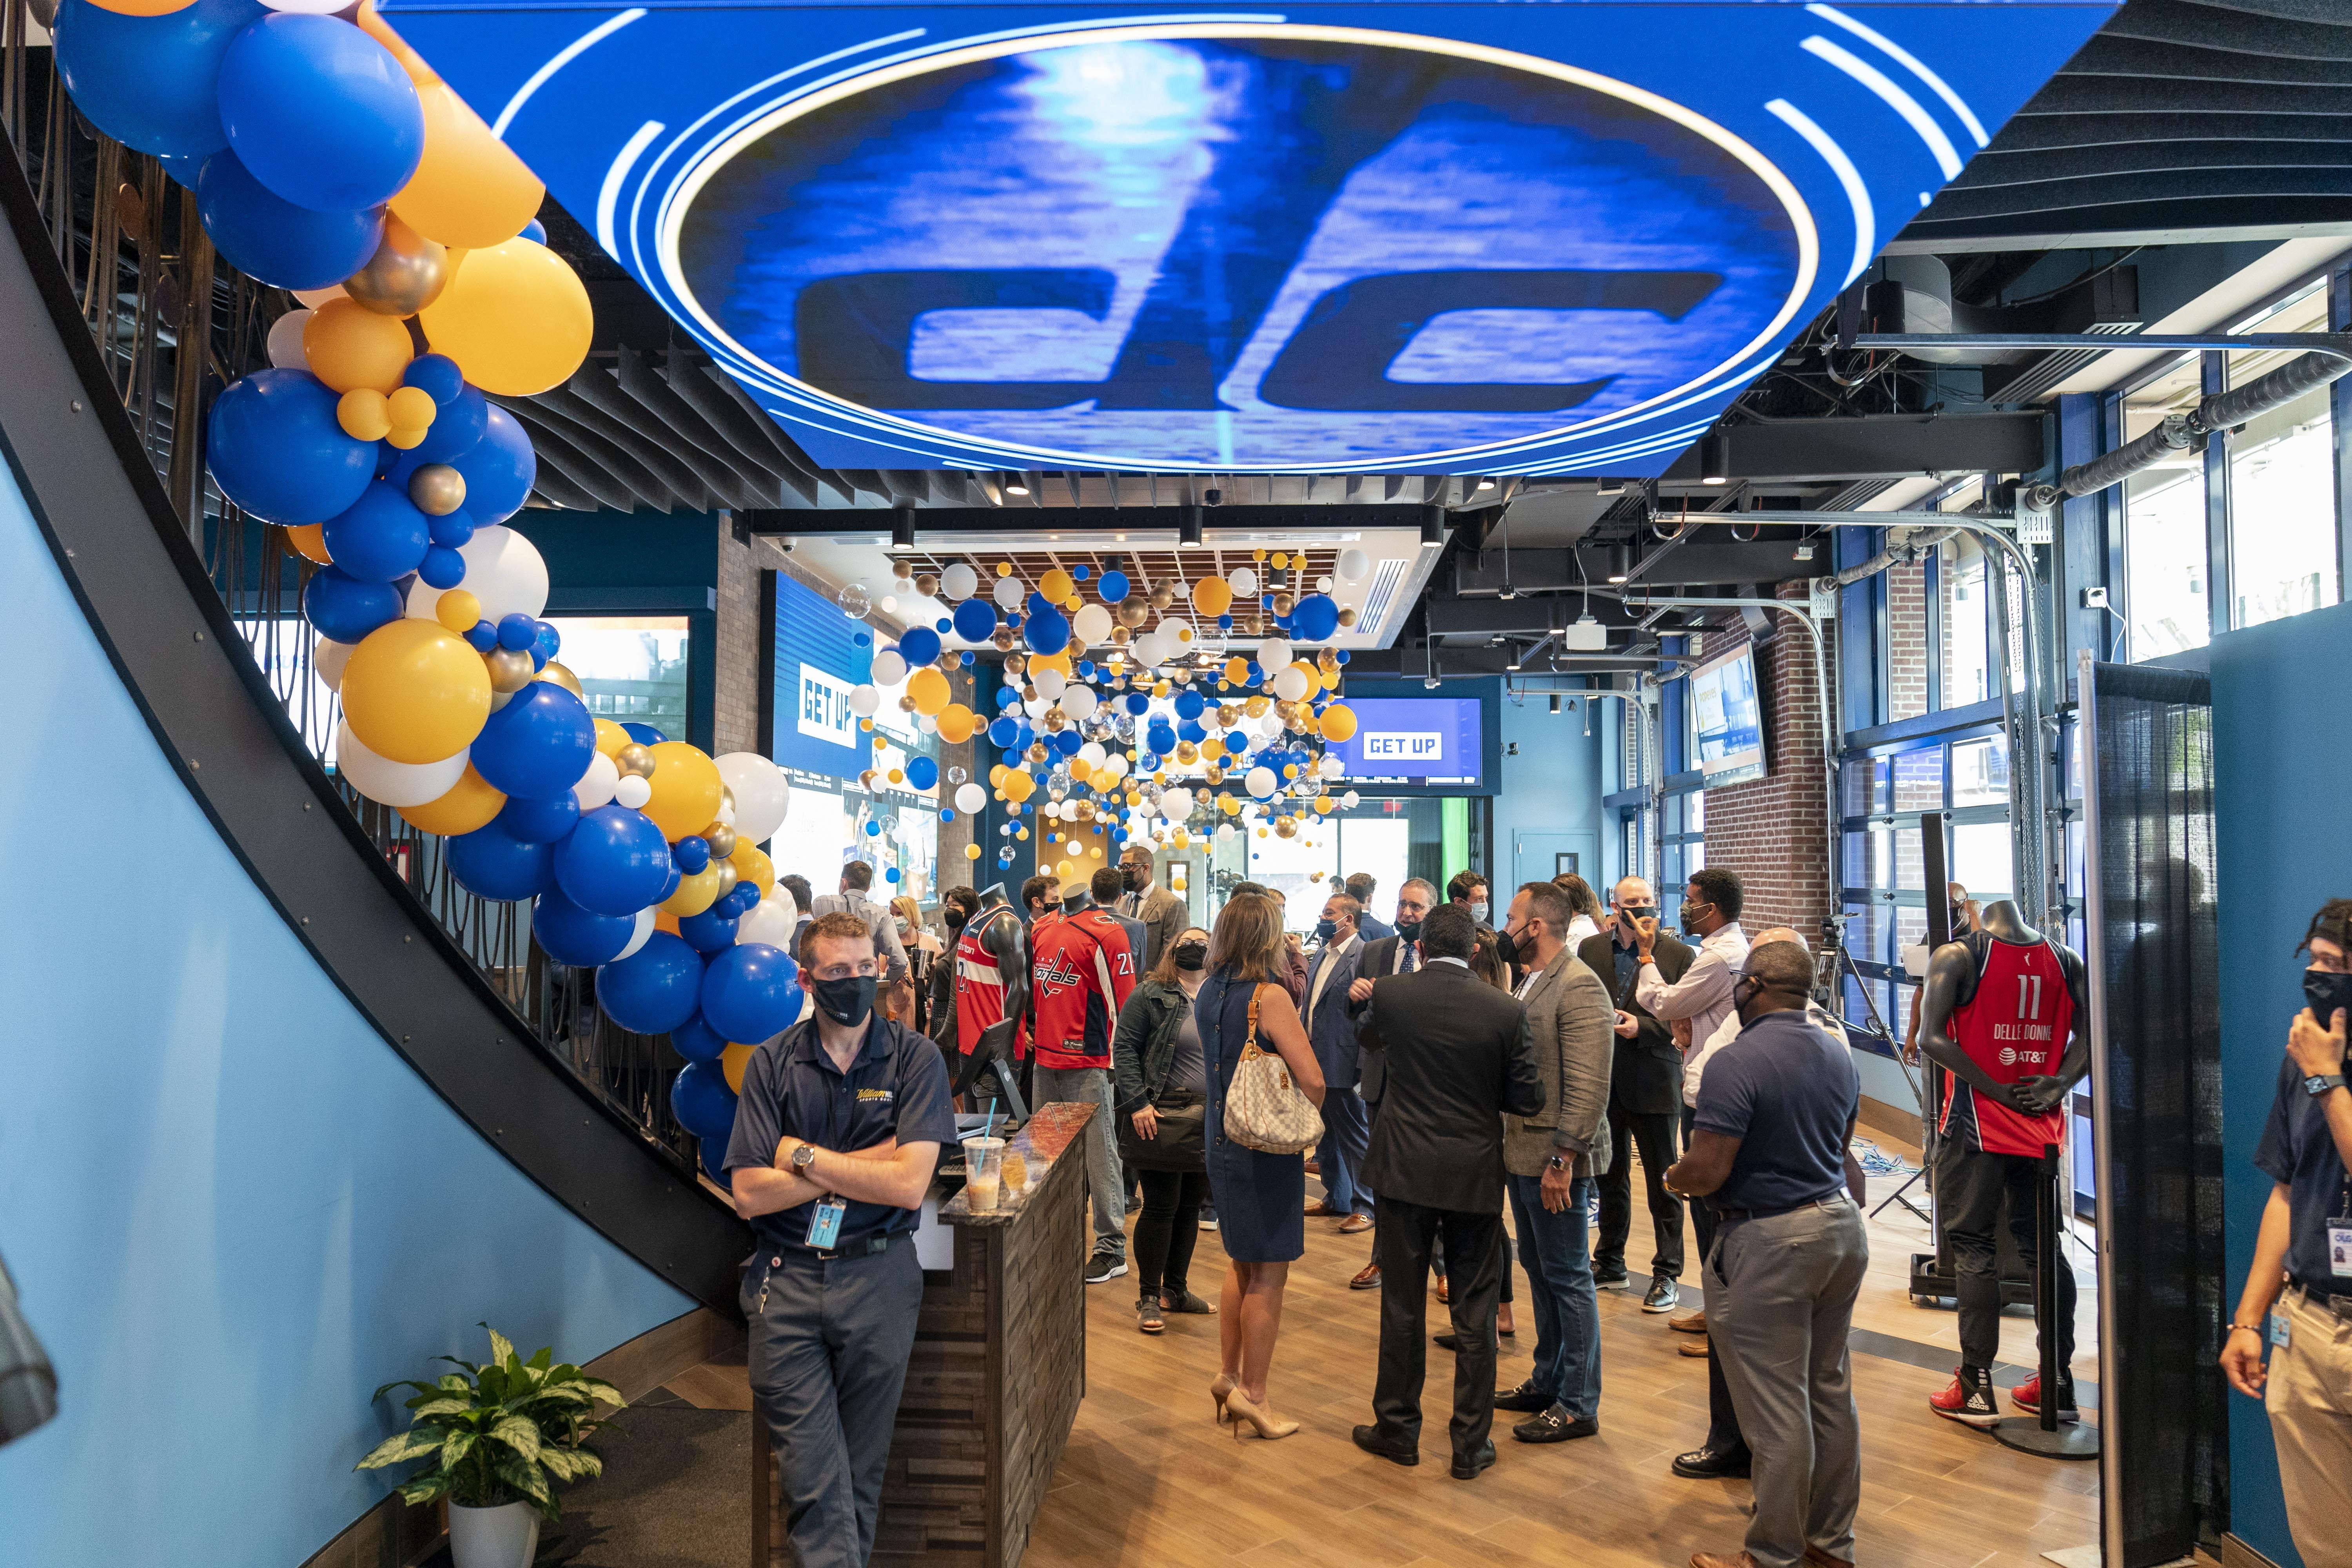 Guests mingle at a ribbon cutting ceremony at the William Hill Sportsbook at Capital One Arena in Washington, D.C.